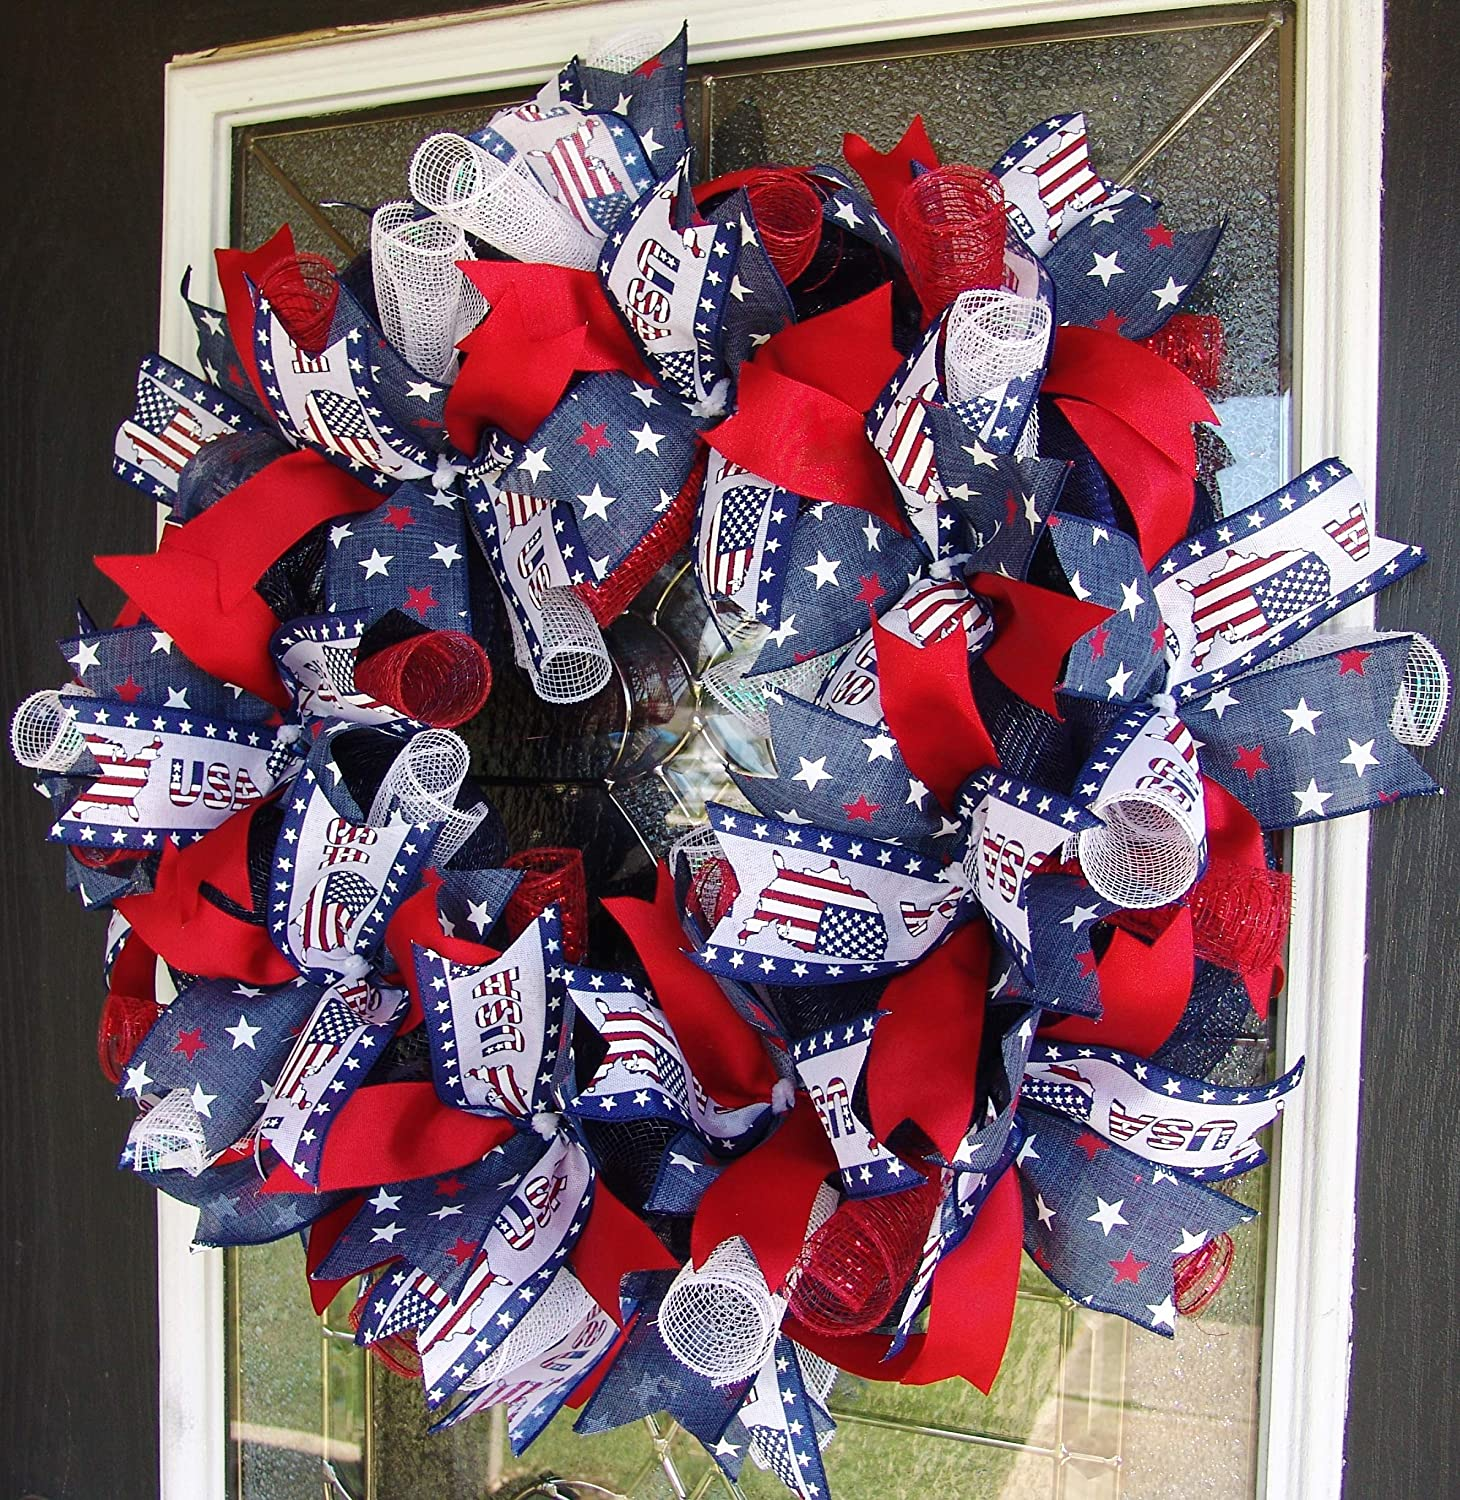 Memorial Veterans Day XL Mickey Mouse 4th Fourth of July Patriotic Deco Mesh Front Door Wreath Summer Disney Home Decor Porch Patio Decoration